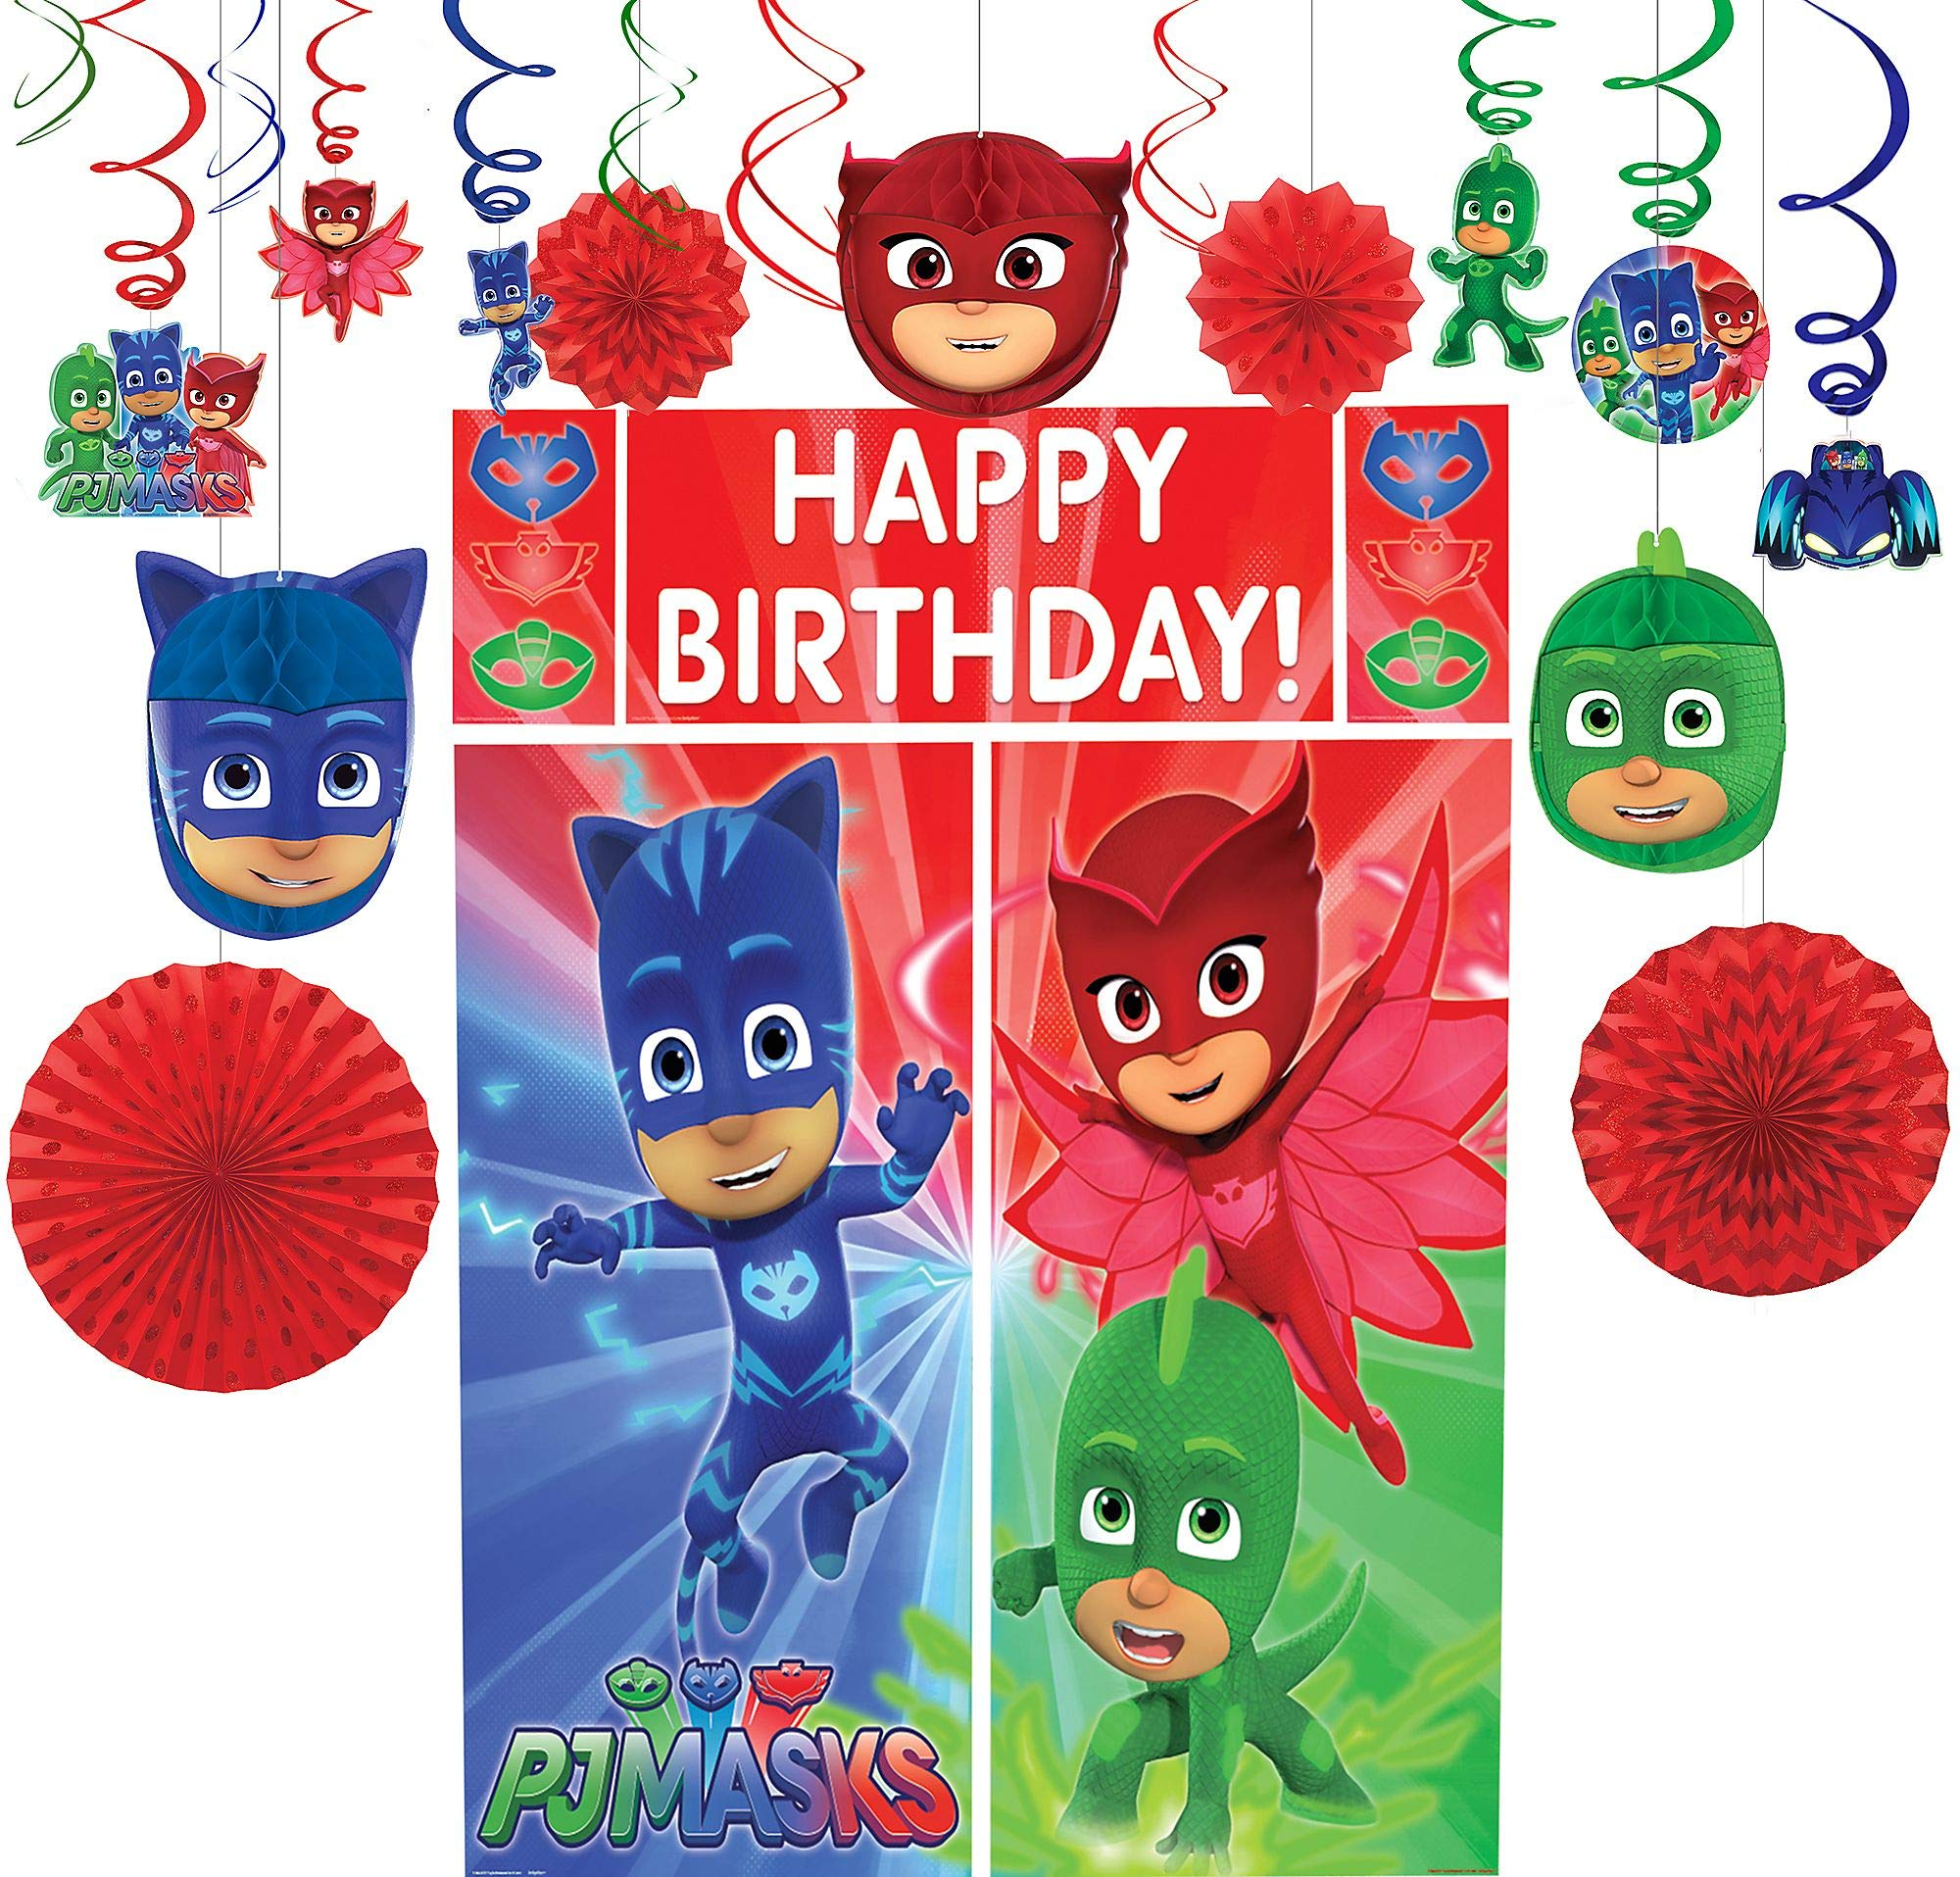 Party City PJ Masks Decorating Supplies, Include Honeycombs, Hanging Swirls and Fans, and a Photo Booth Set with Props